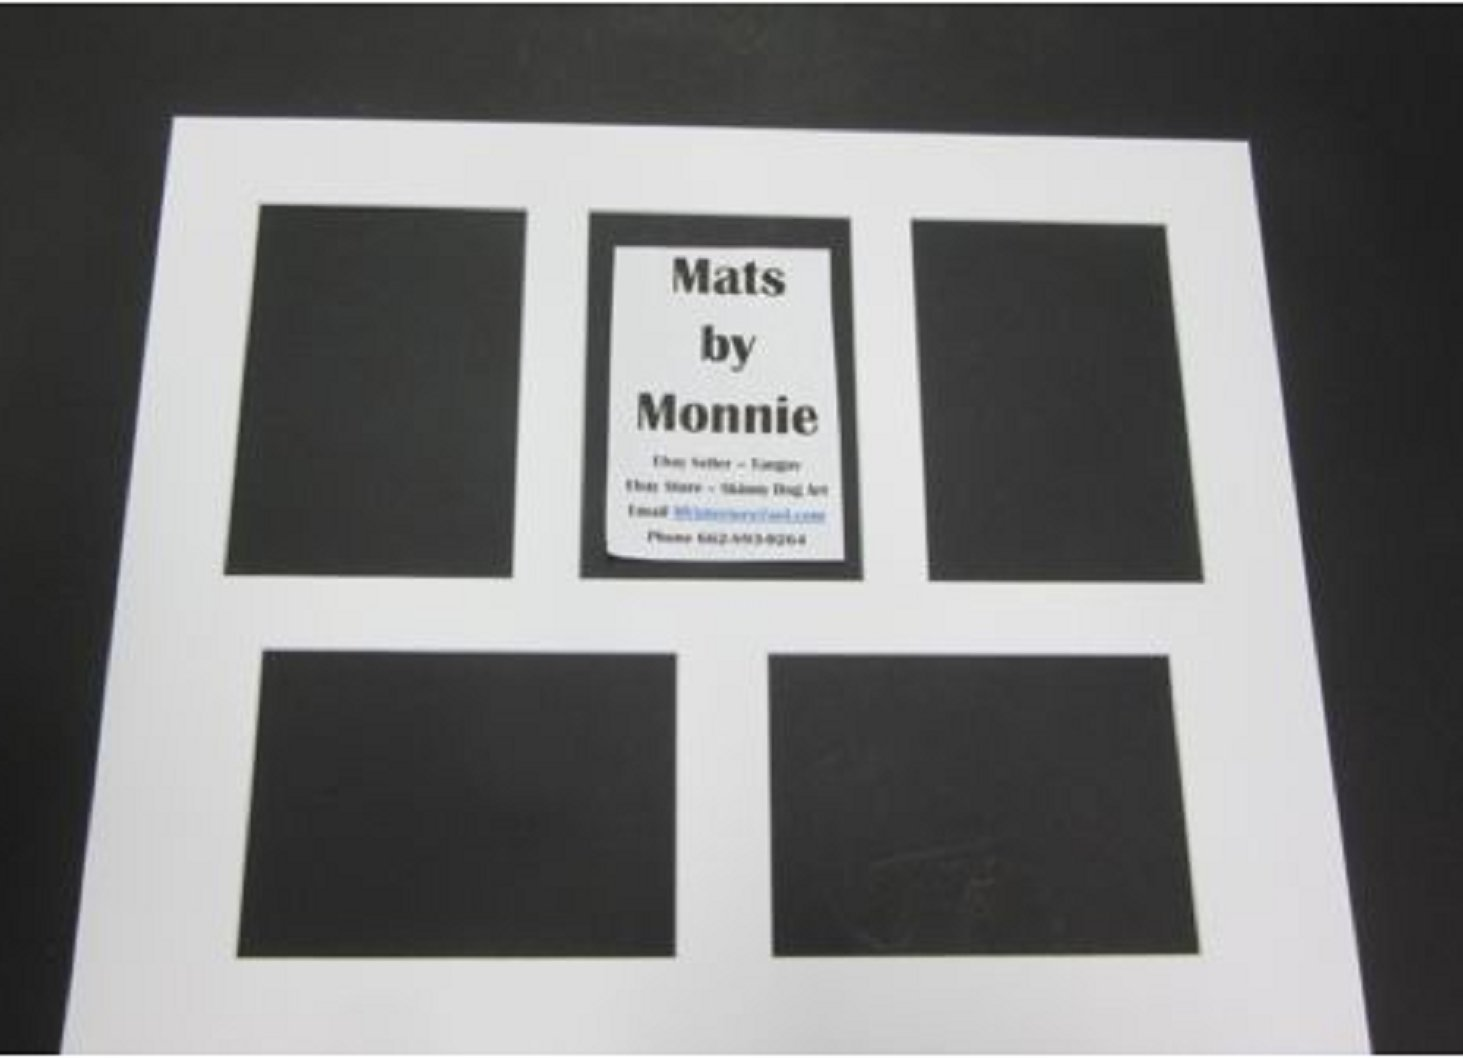 USA Premium Store Picture Framing Mat 16x20 Purewhite with 5 openings for 5x7 photos set of 5